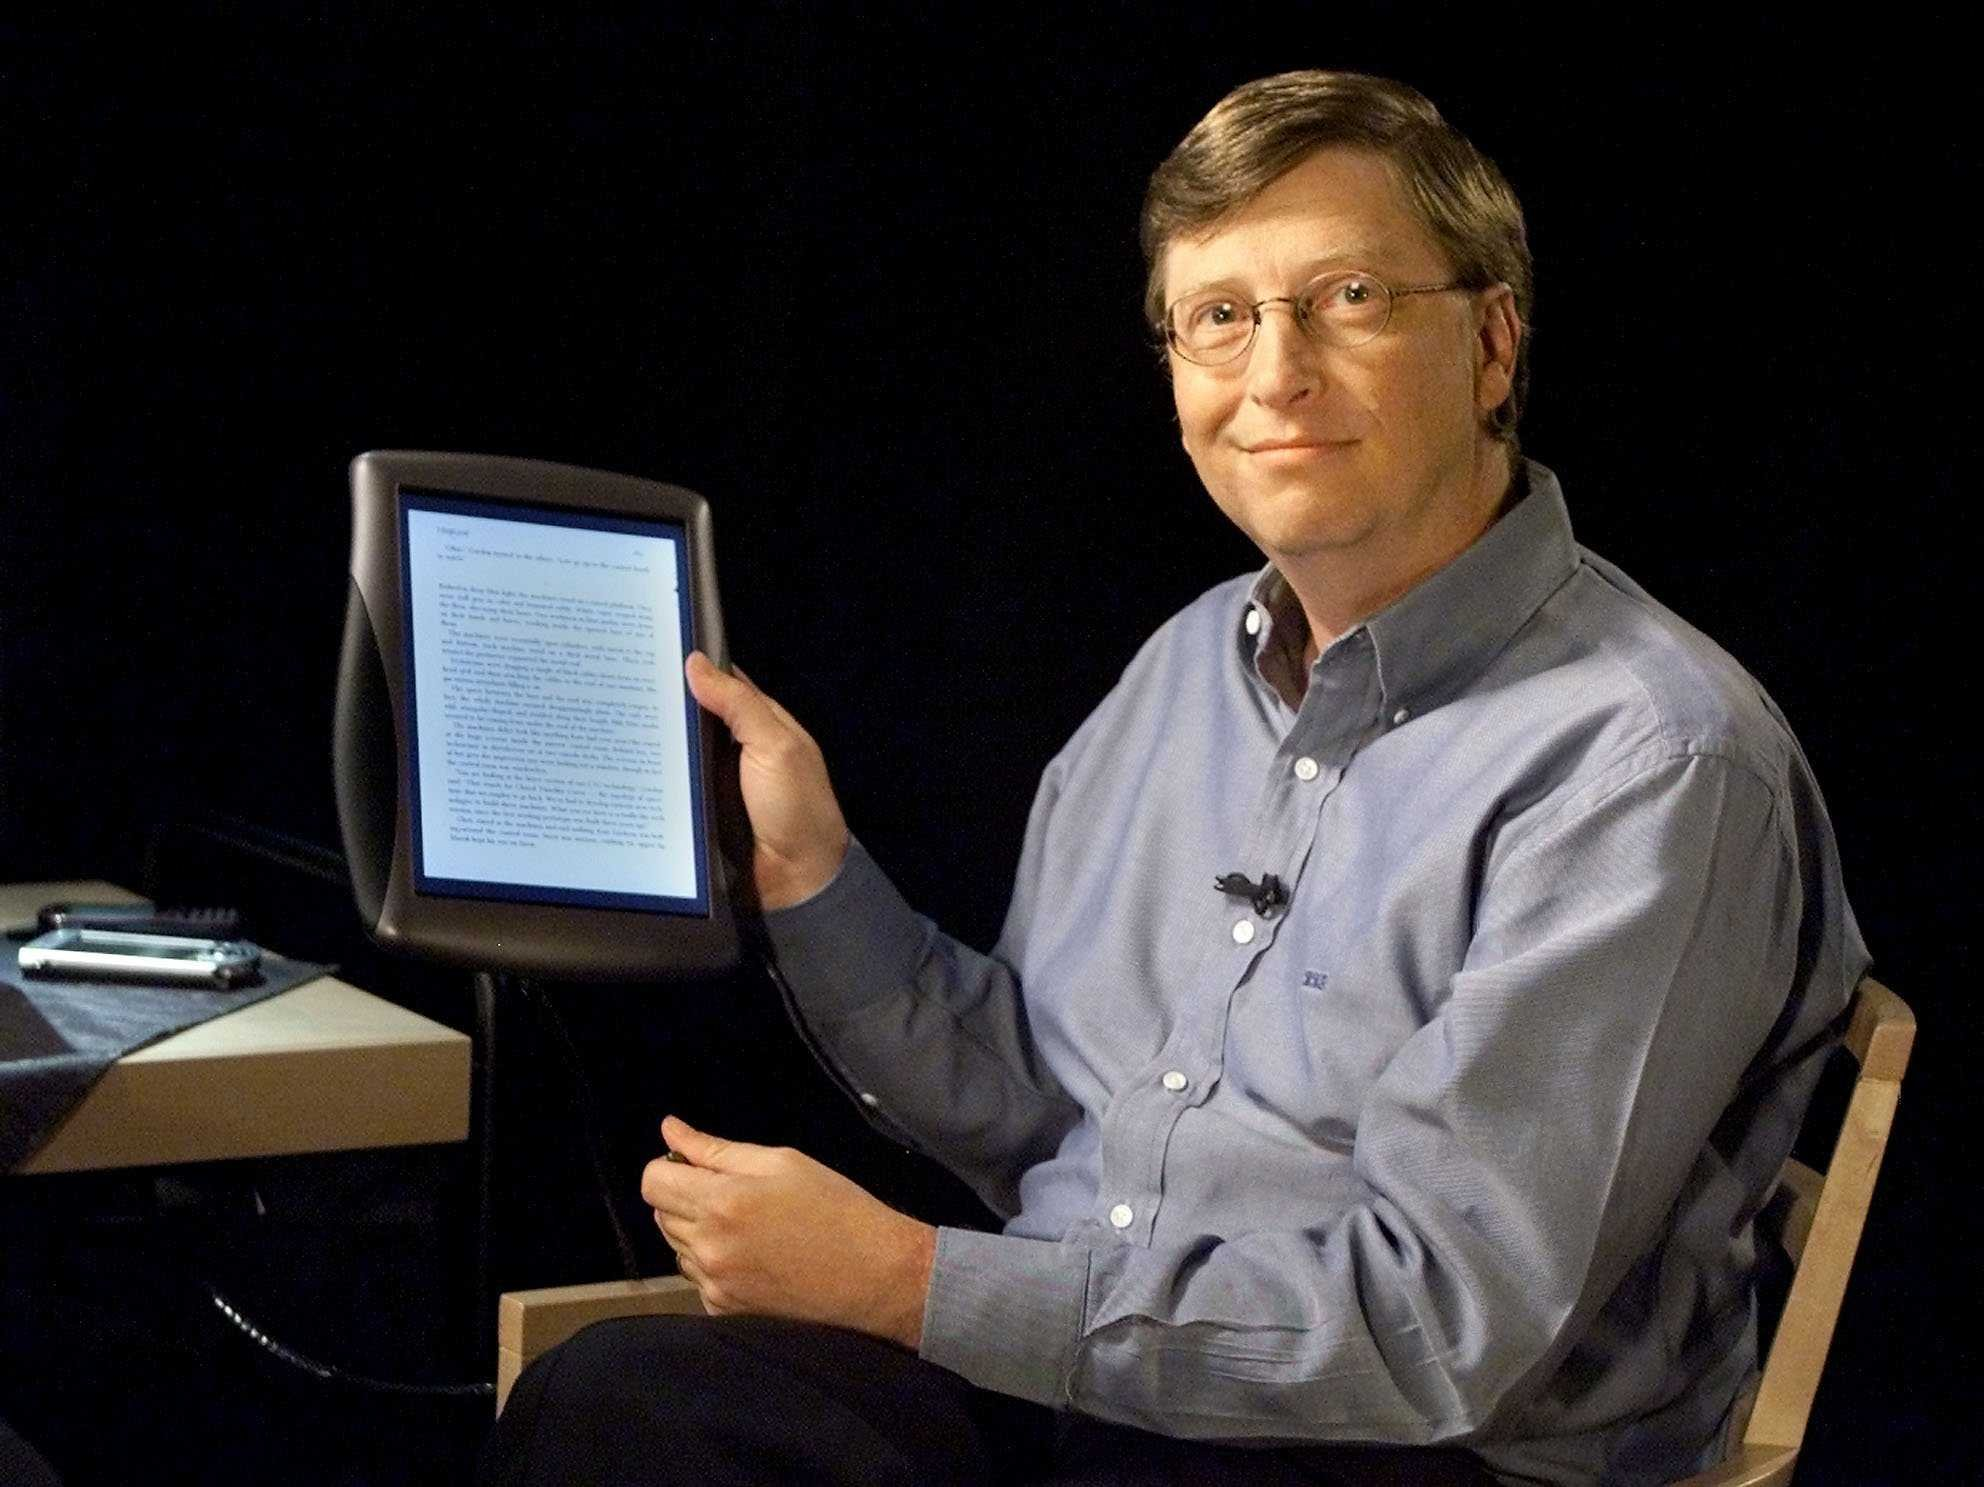 bill gates essay essay about steve jobs about microsoft gates  essay about steve jobs about microsoft bamboo innovator page bamboo innovator bill gates tablet bamboo innovator